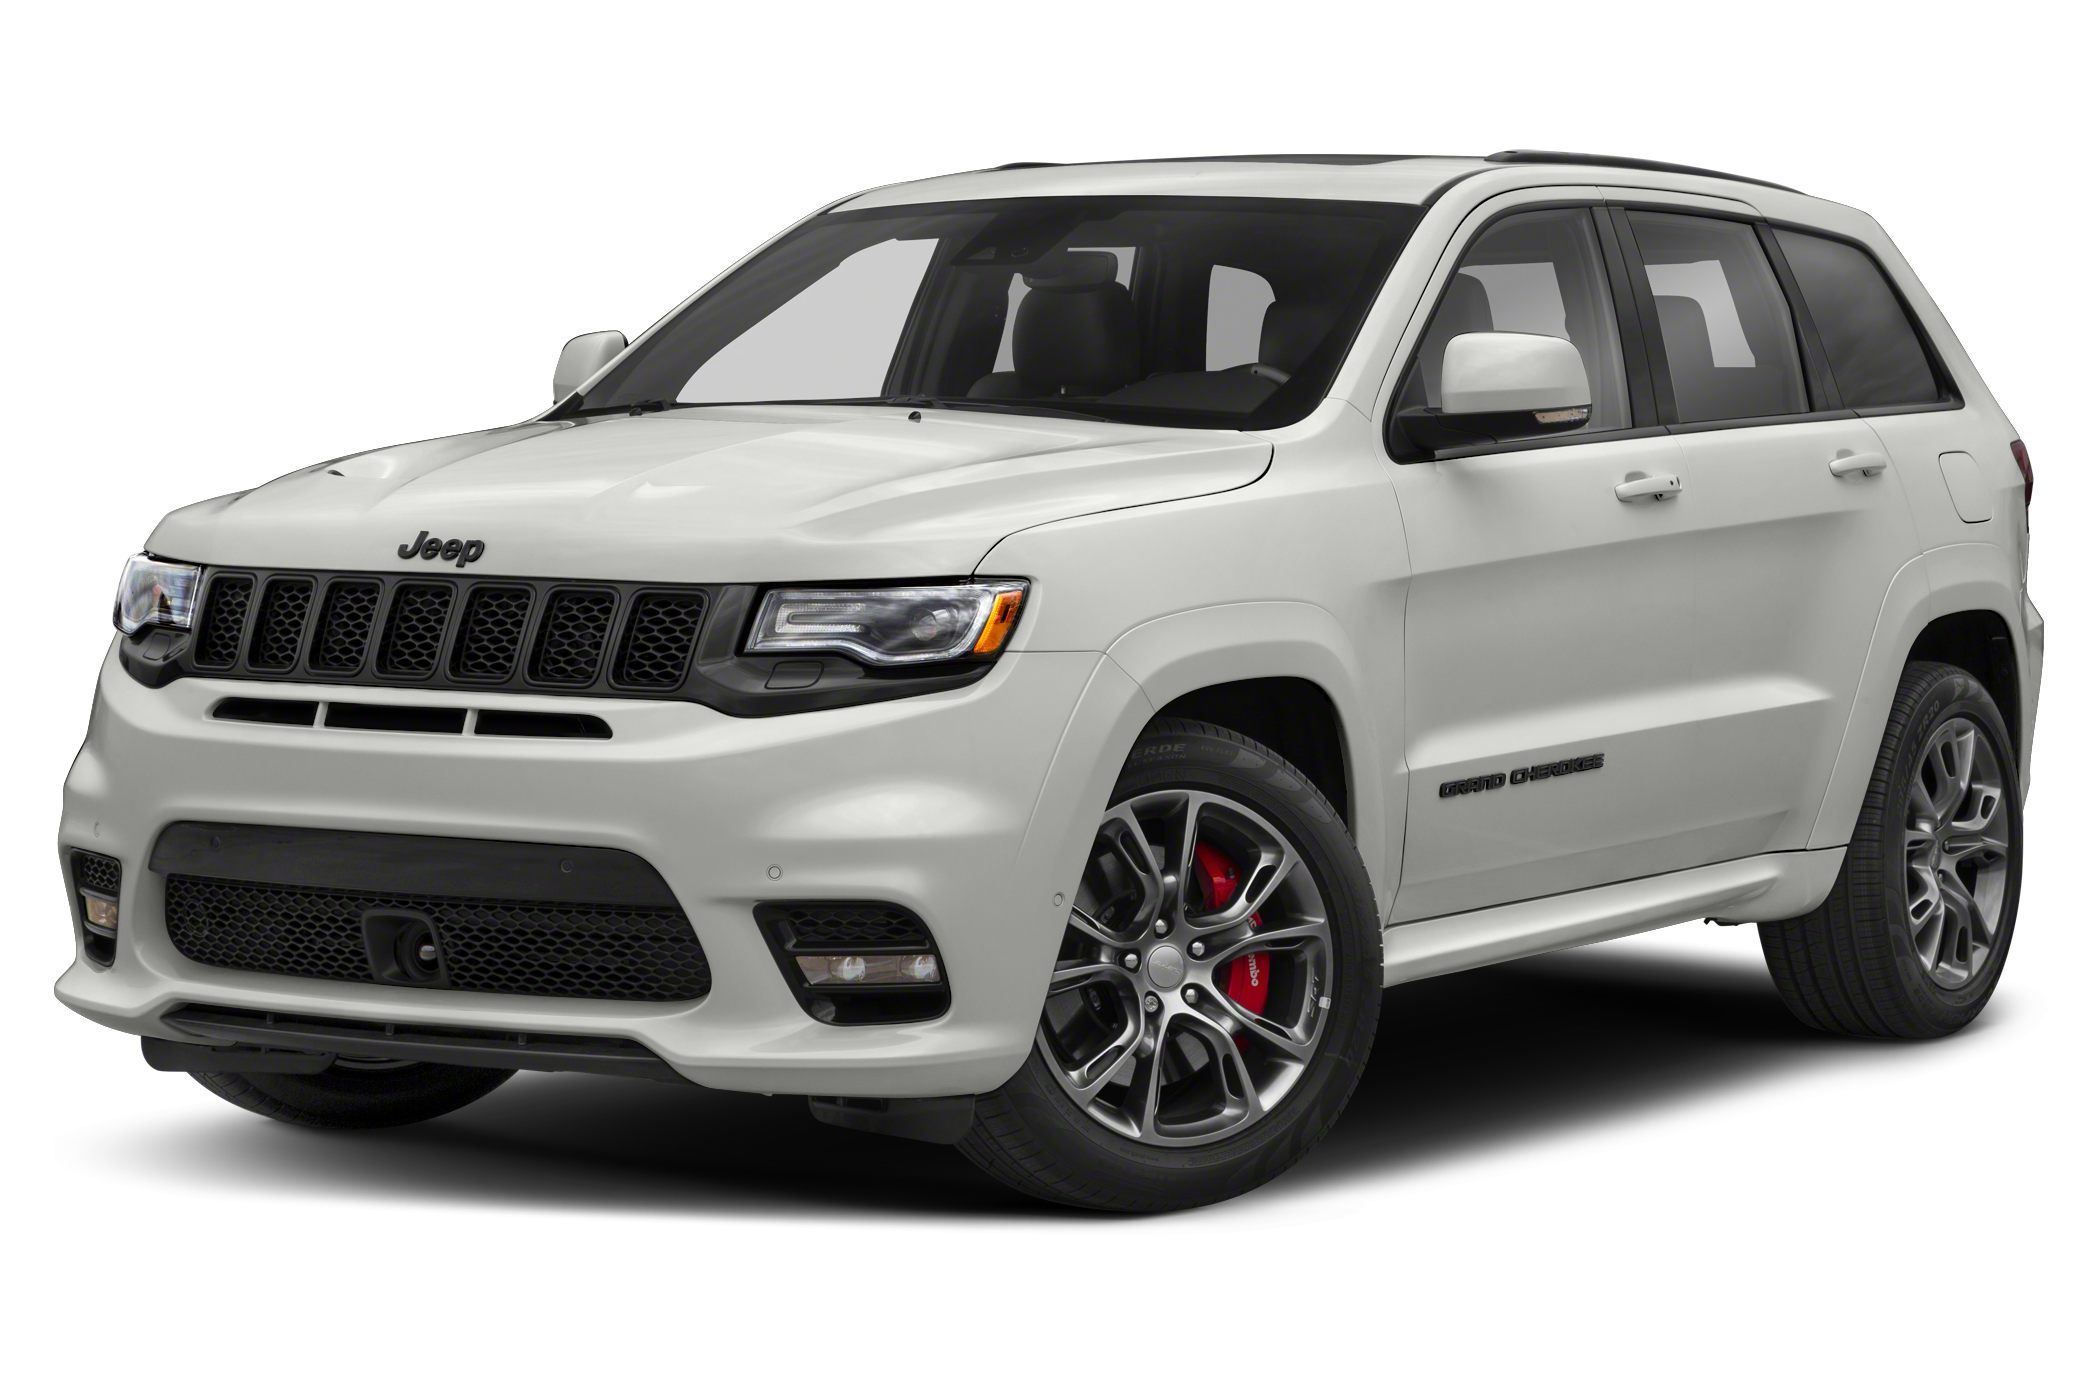 2020 Jeep Grand Cherokee Srt8 Jeep grand cherokee srt